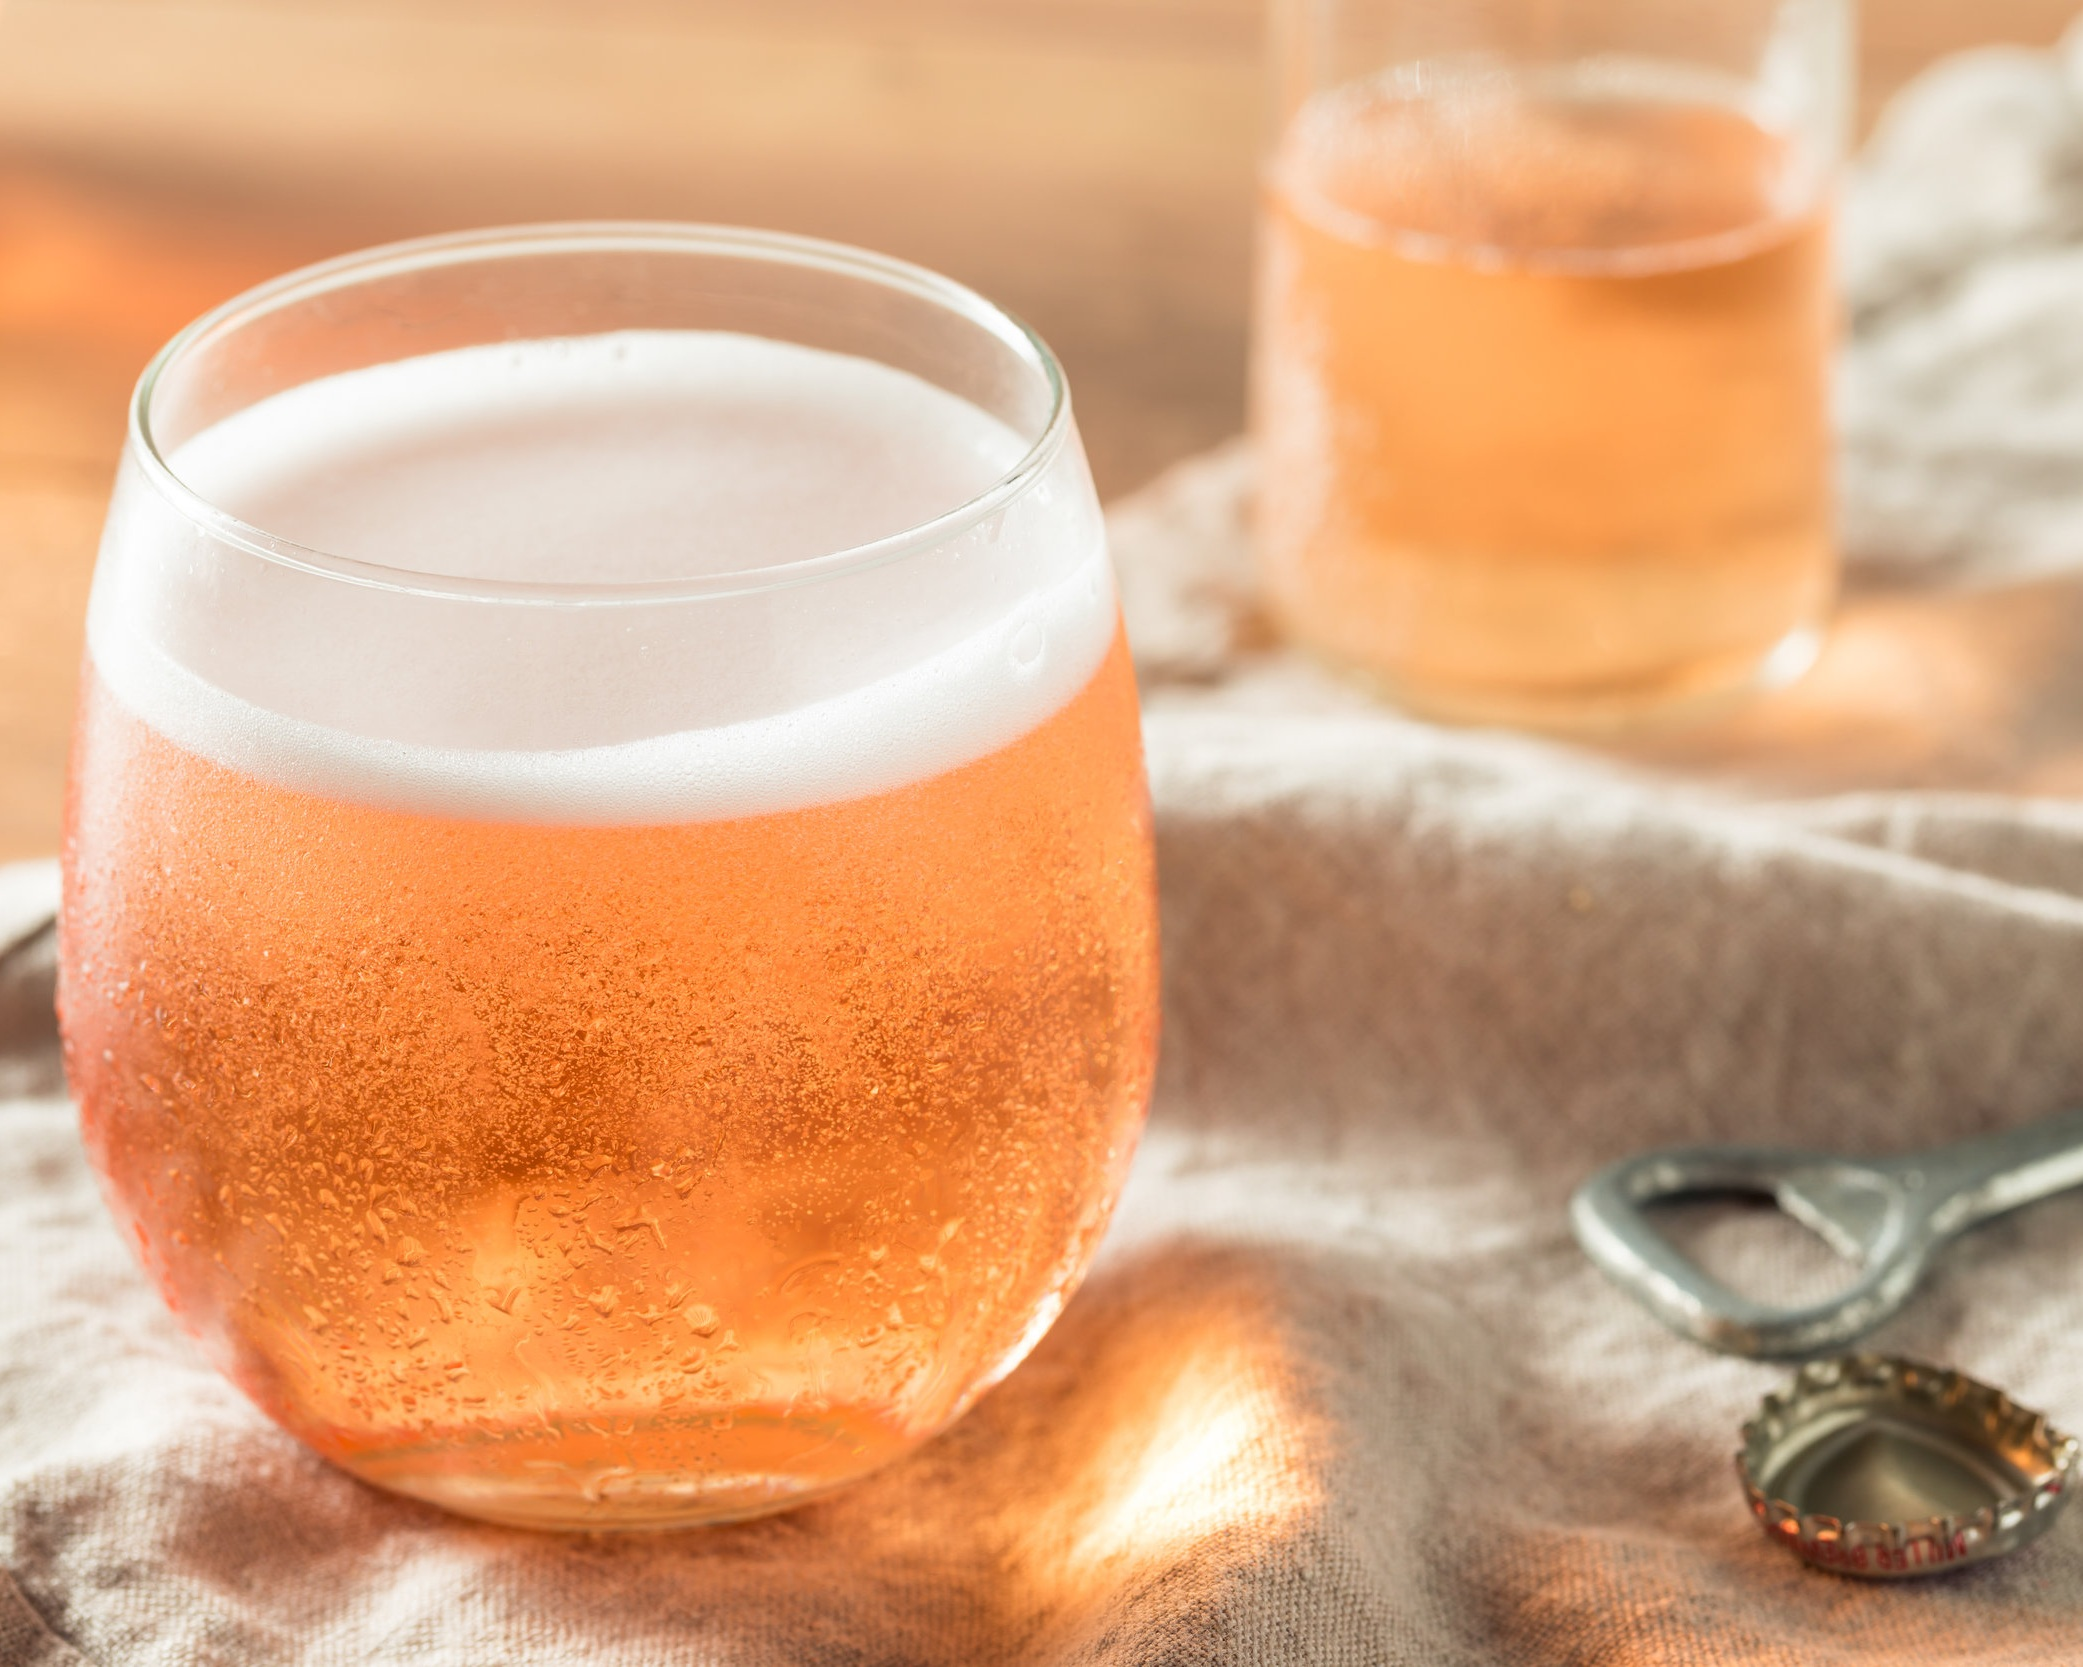 Cava - A sparkling wine that can be white or rosé, Cava can be made from the Macabeu, Parellada and Xarel·lo popular and traditional grape varieties. Ranging from very dry to very sweet, there is a range of Cava flavours to experience.